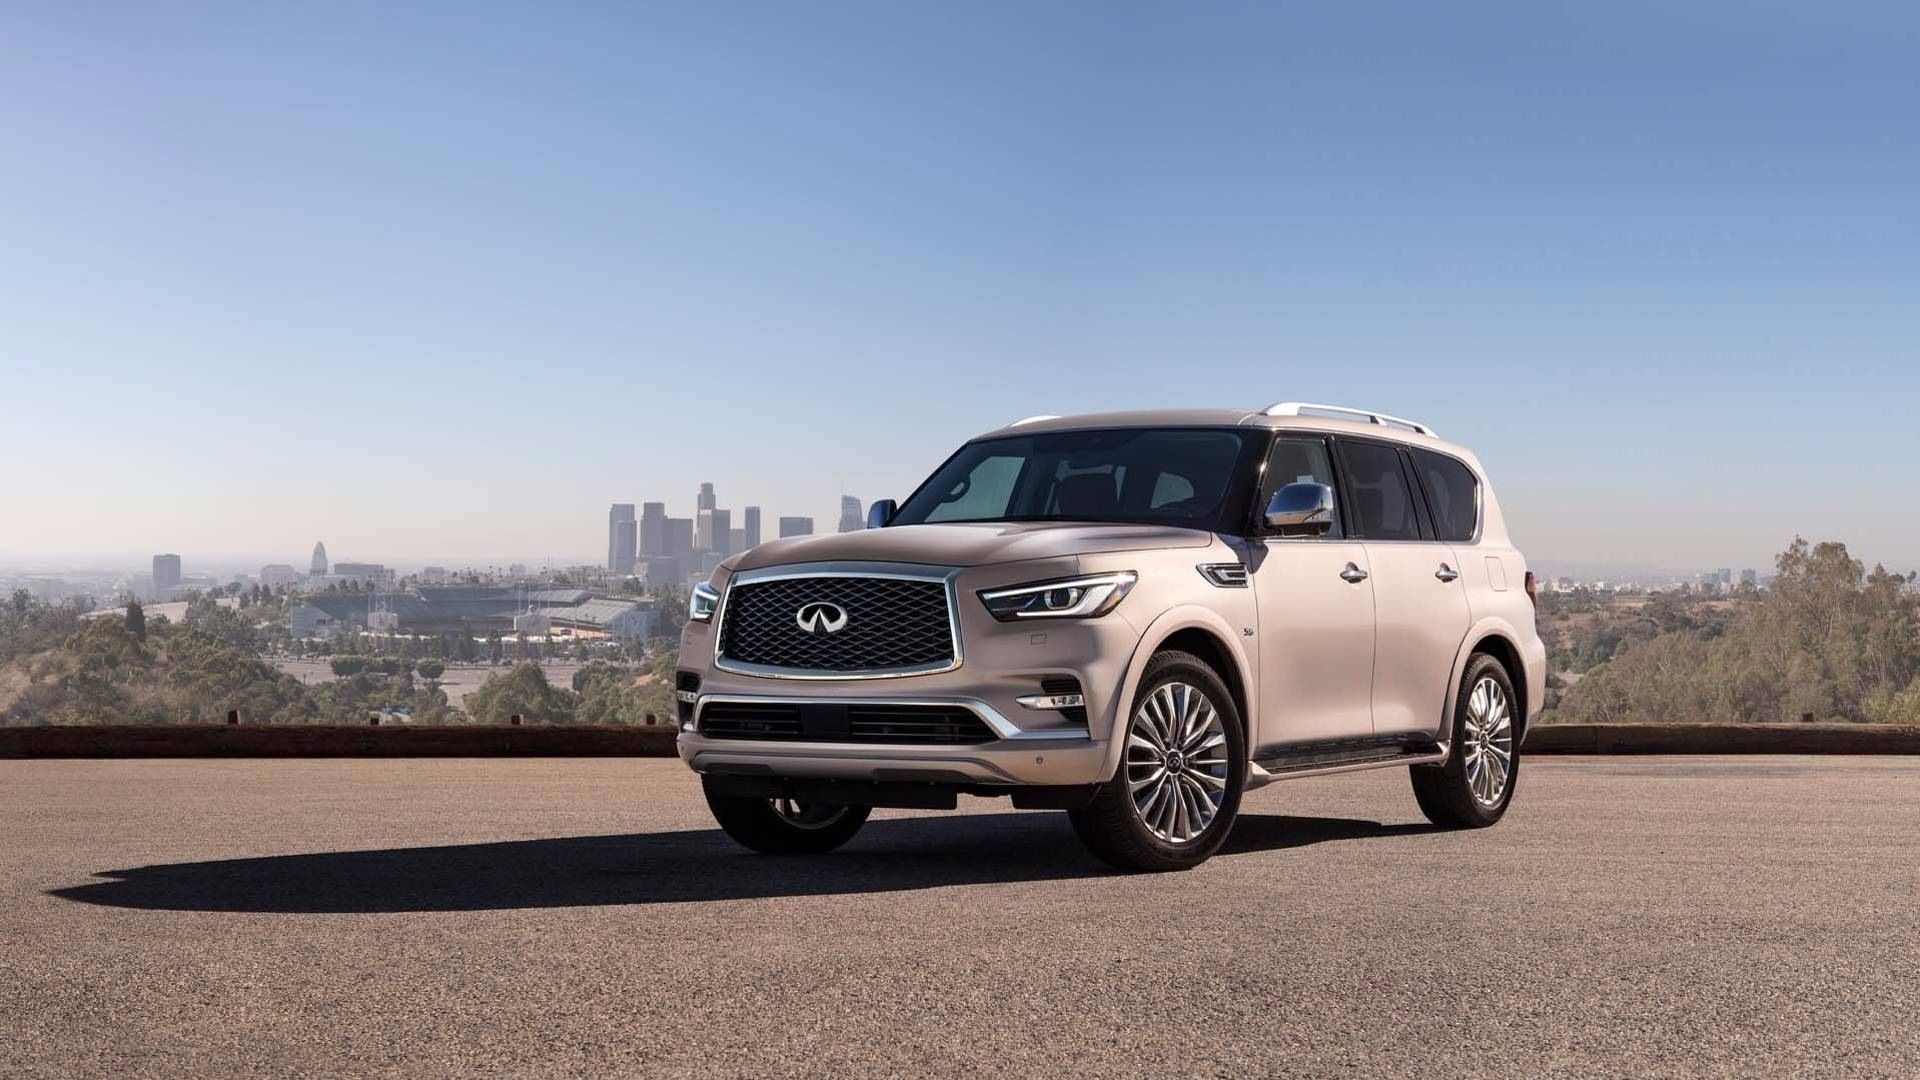 What Will The 2020 Infiniti Qx80 For Sale Be Released Infiniti New Cars Suv